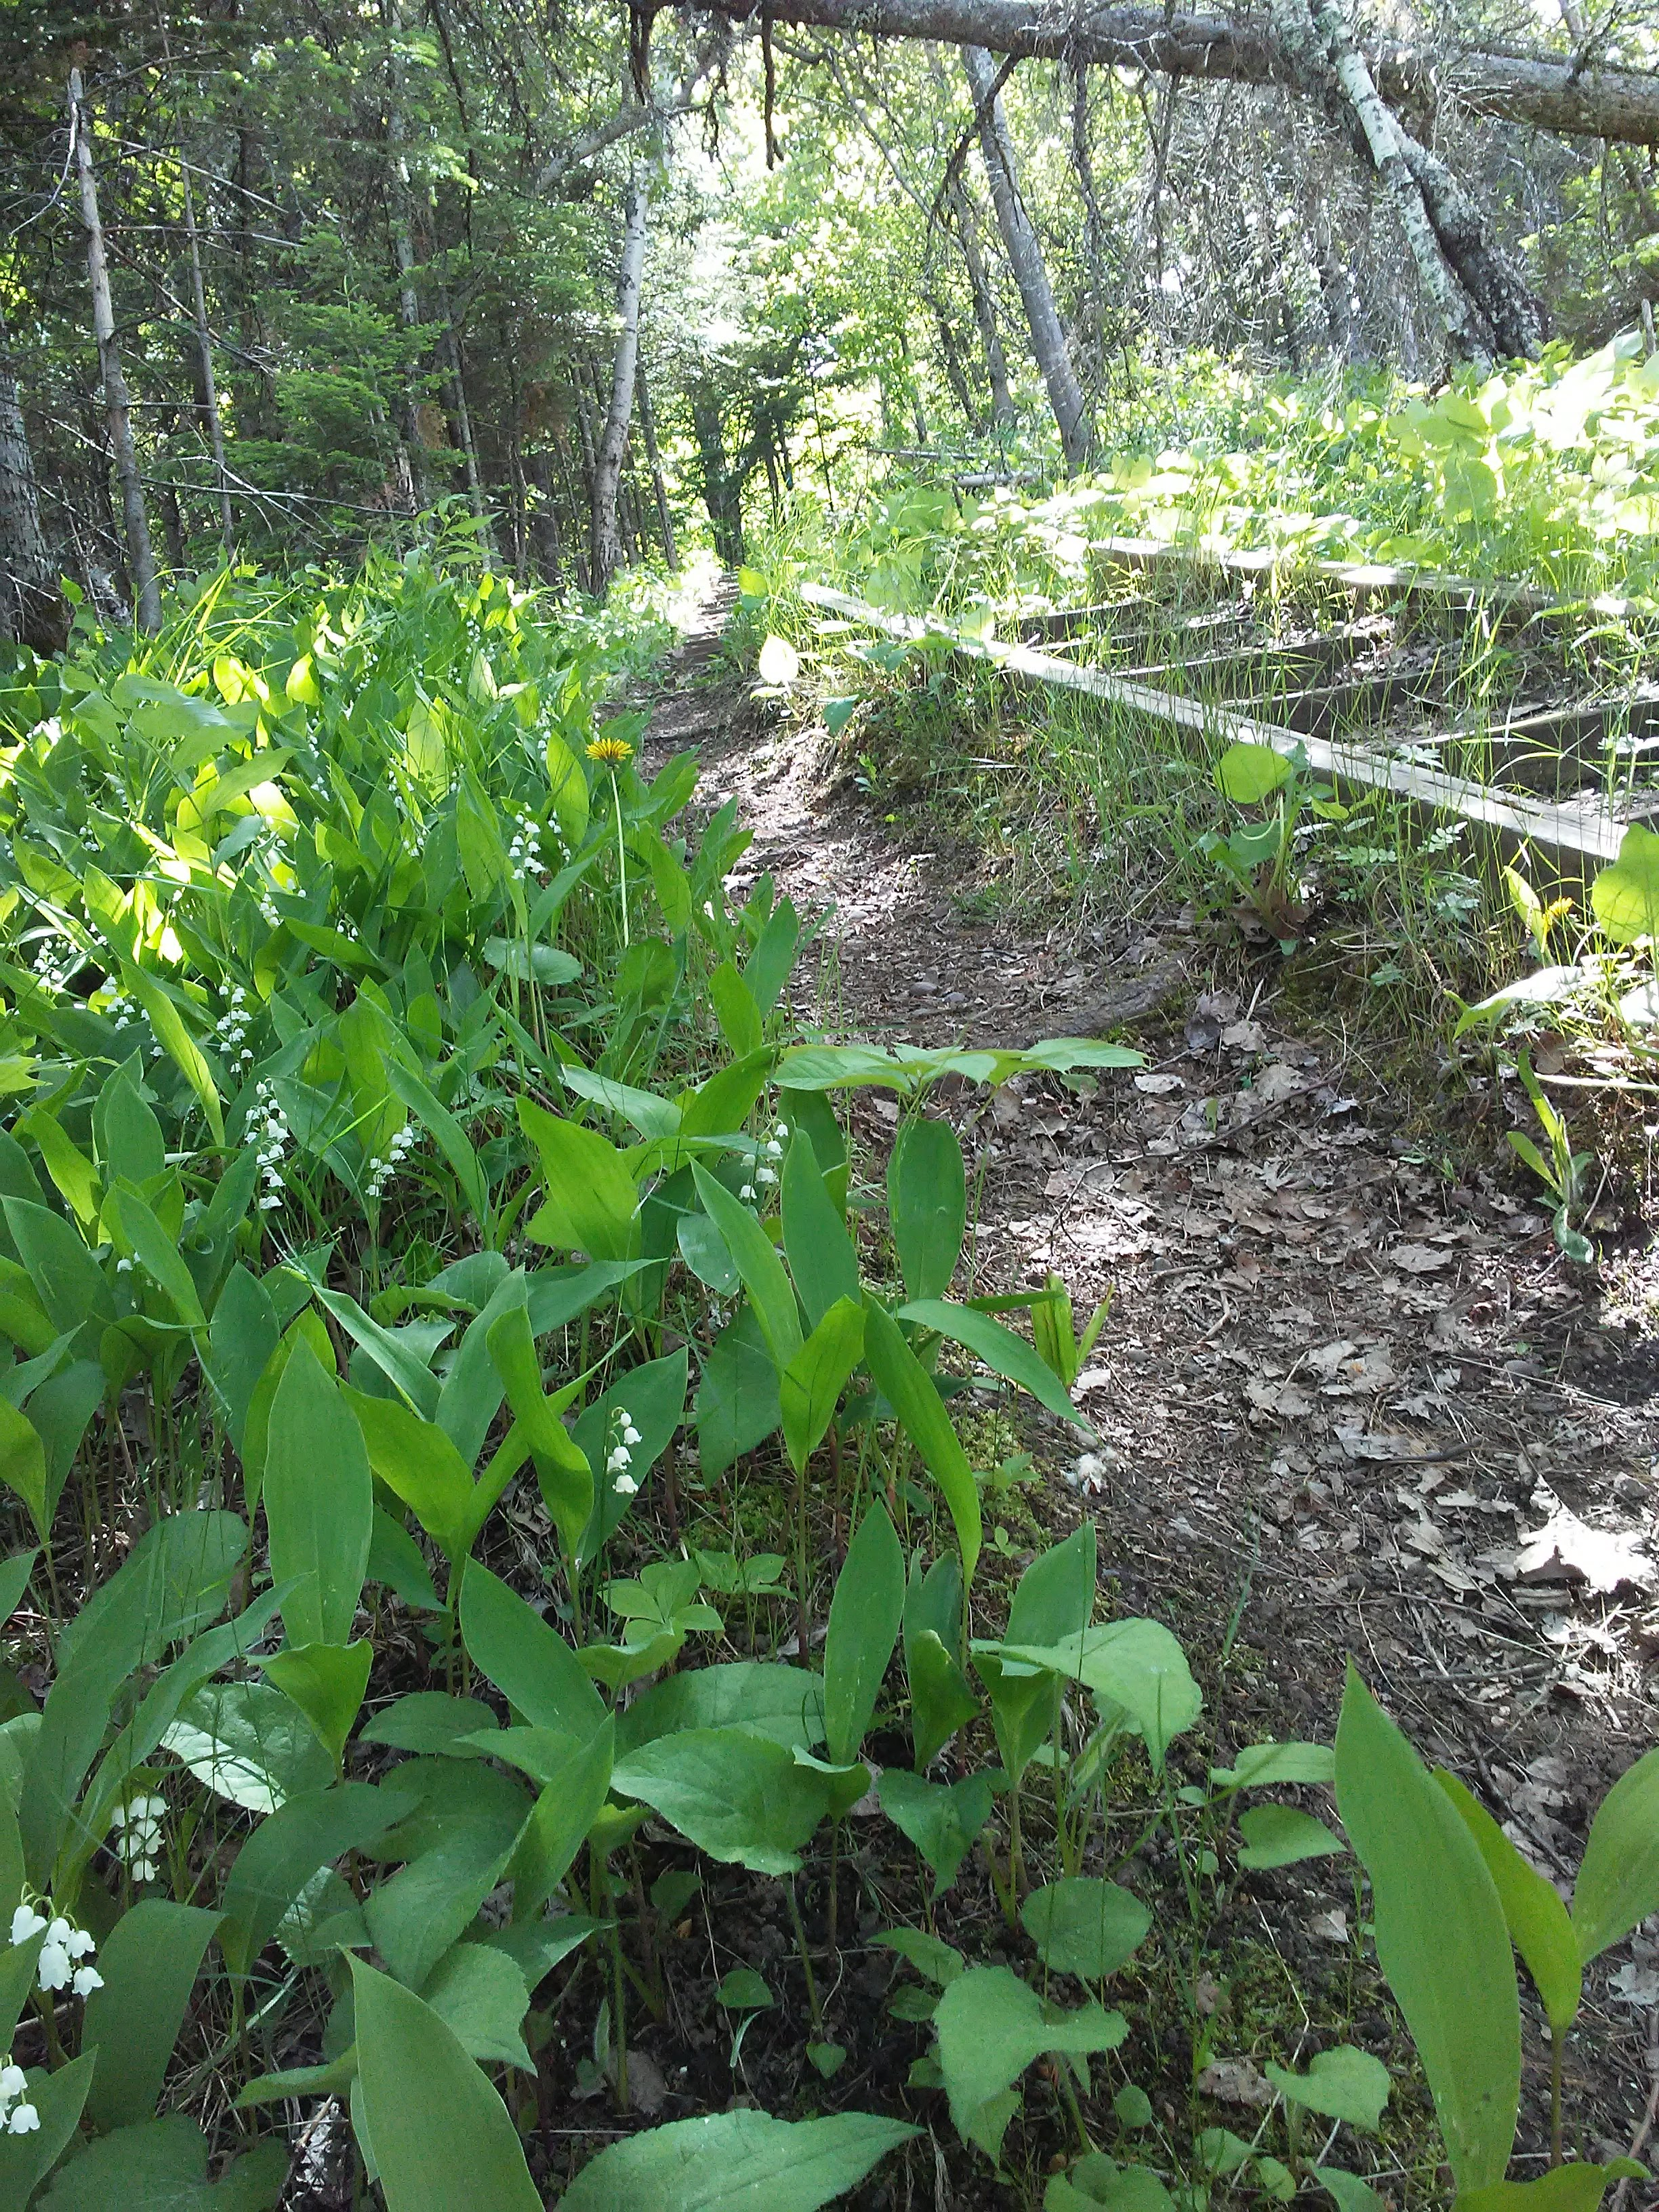 lily of the valley and wood steps on a trail in the woods